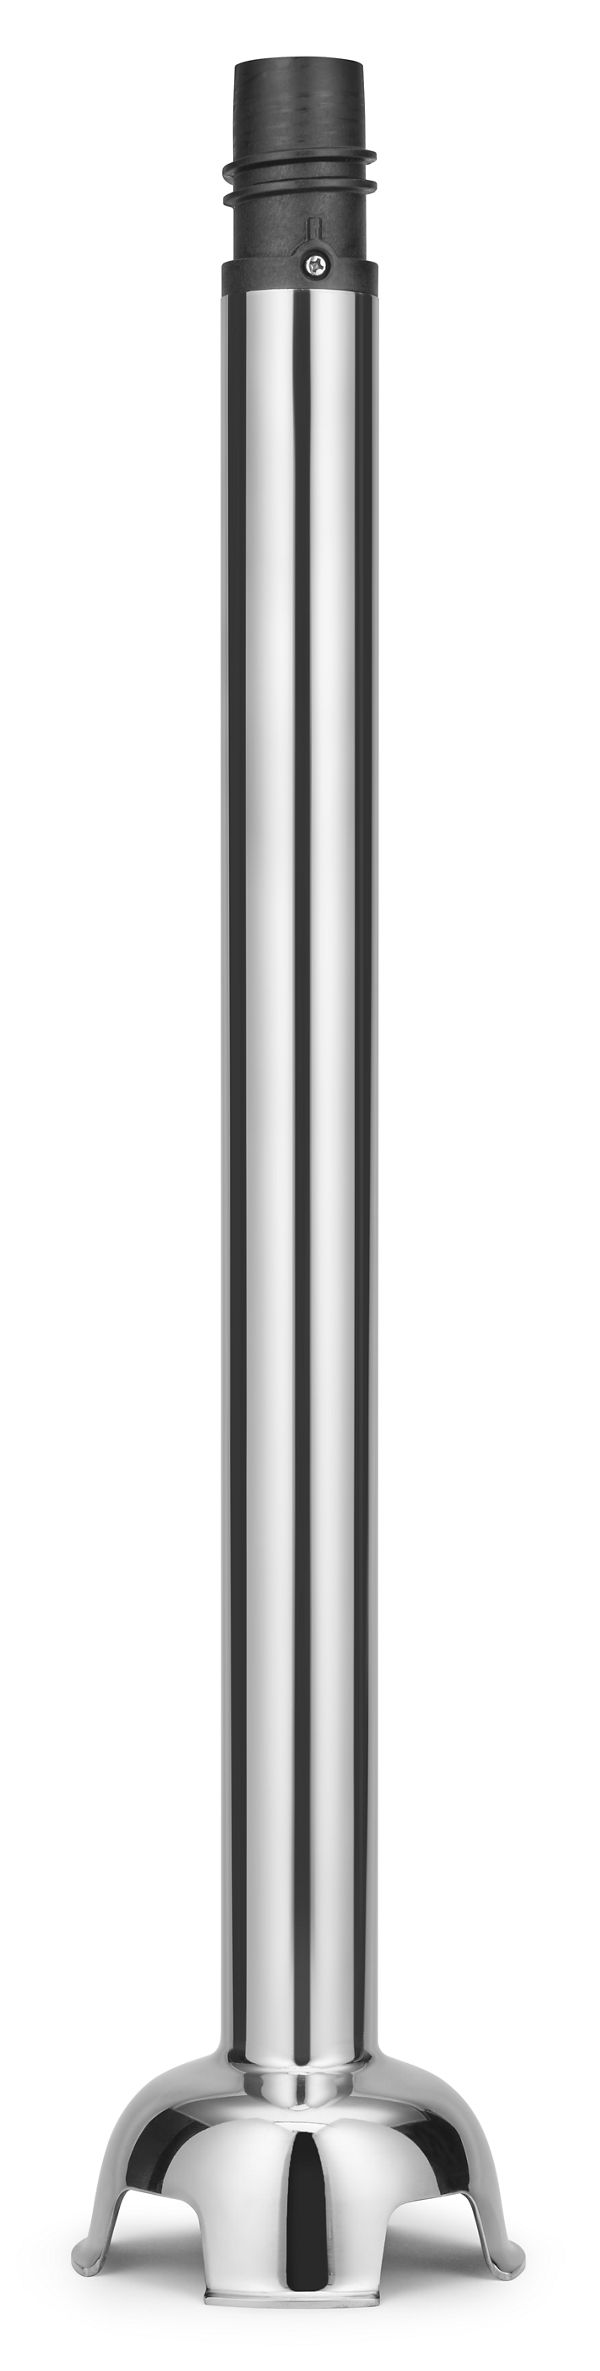 "16"" Blending Arm for Commercial® 400 Series Immersion Blender"